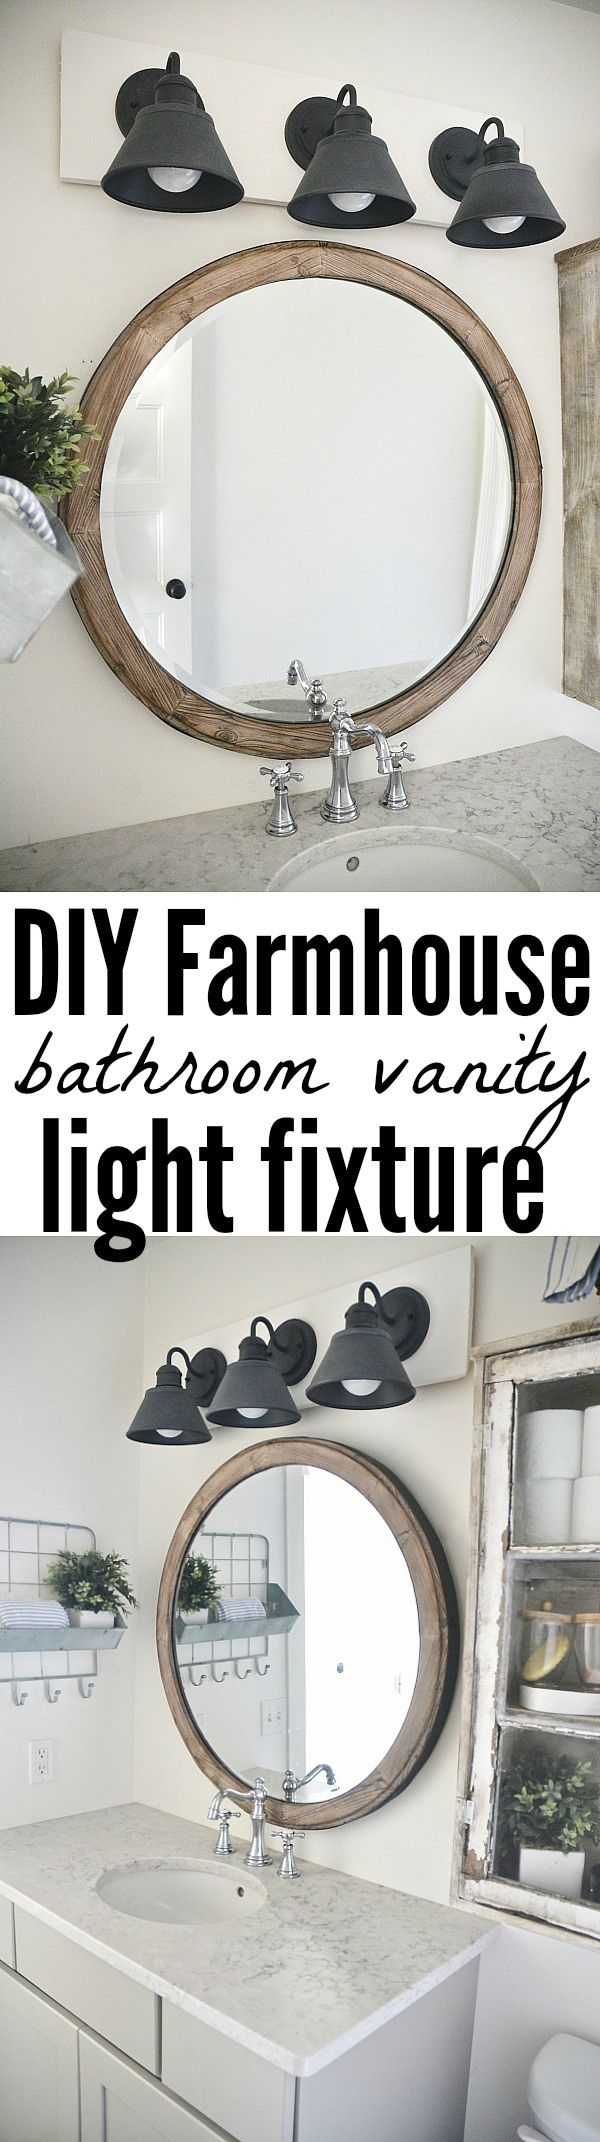 Bathroom Vanity Lights Pinterest 25+ best vanity light fixtures ideas on pinterest | rustic vanity